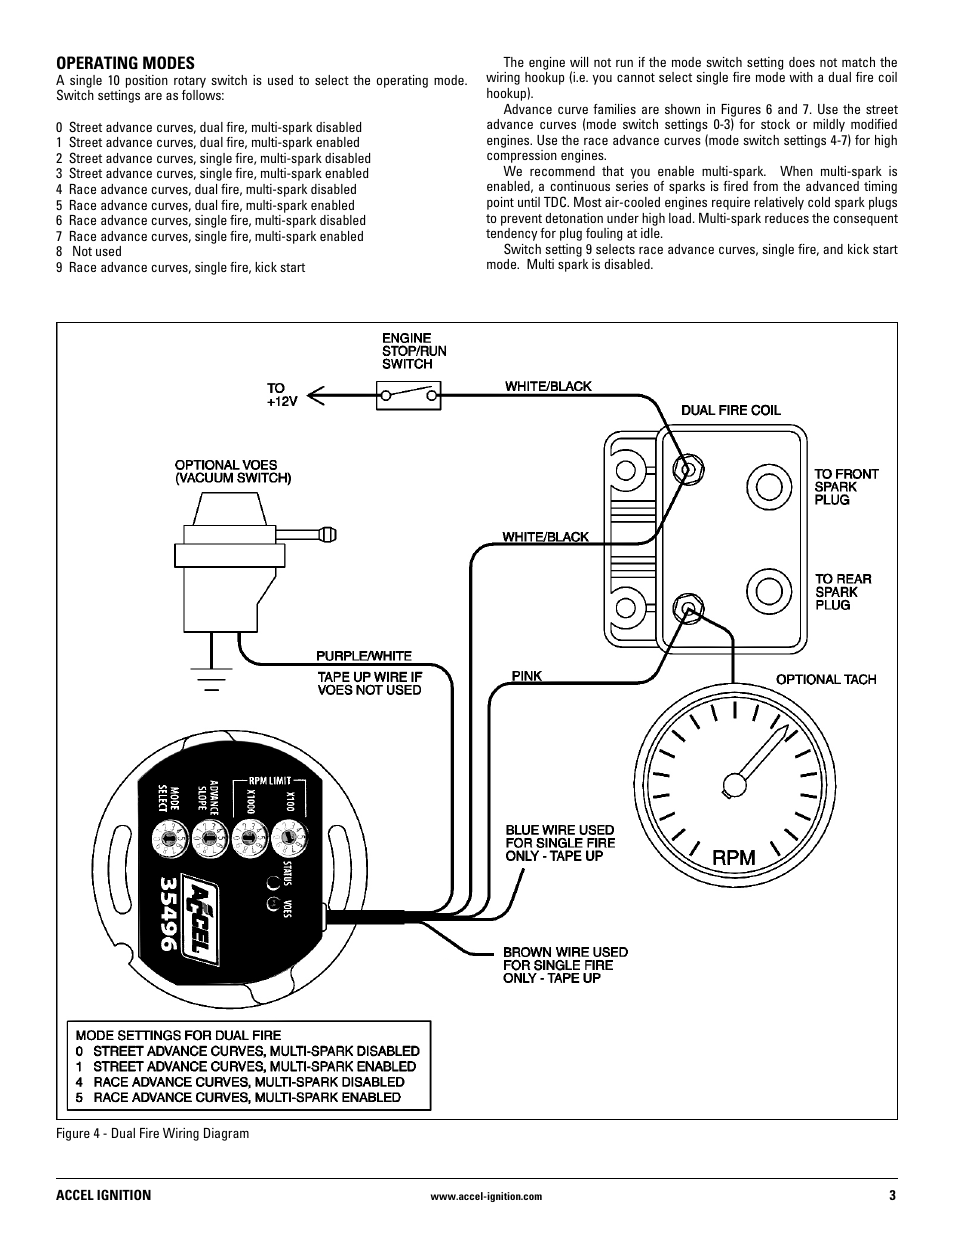 mallory ignition accel ignition 35496 page3?resize\=665%2C861 accell ignition wiring diagram accel 300 wiring diagrams  at n-0.co